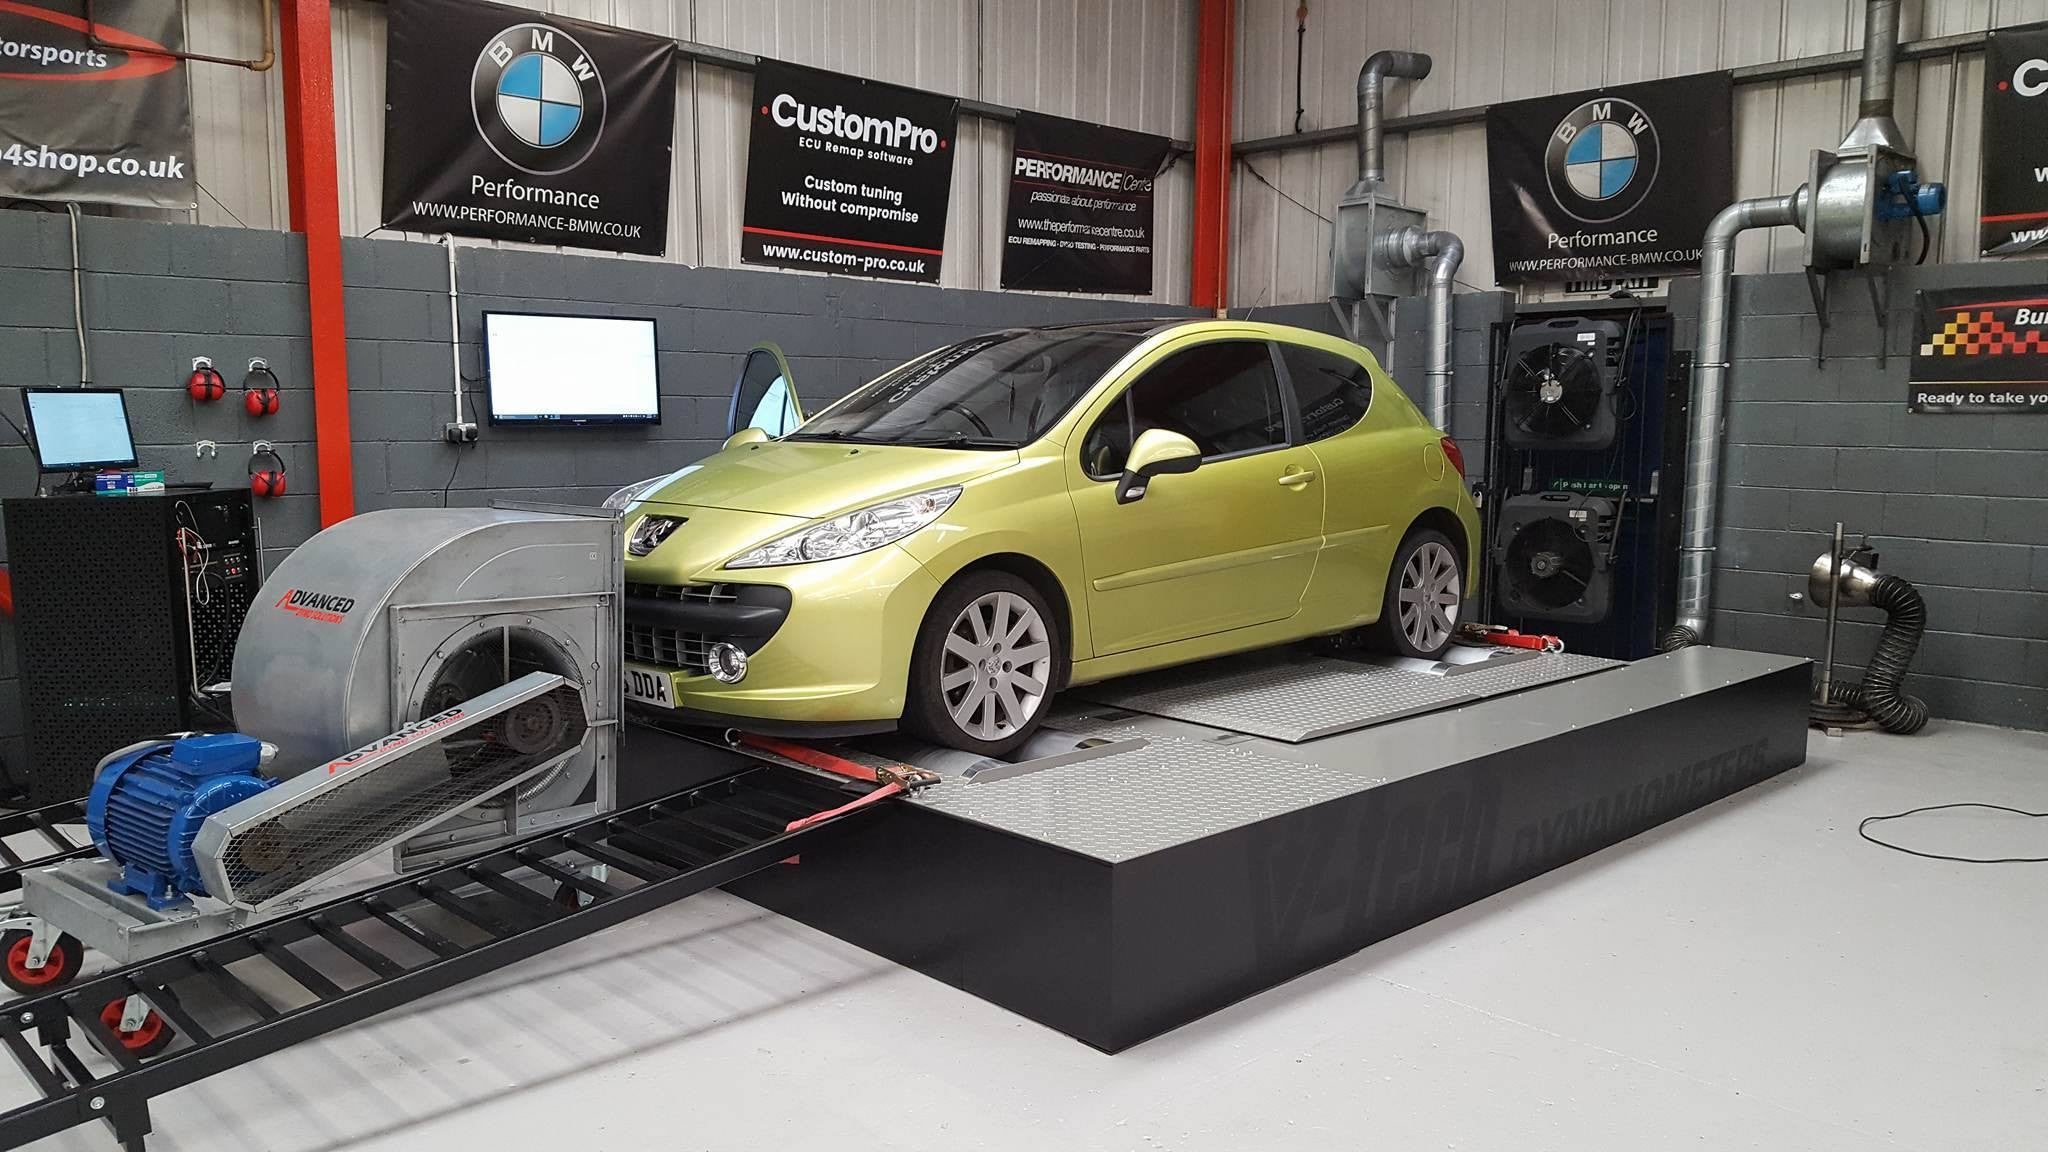 Peugeot 207 1.6 HDI - Stage 1 remap